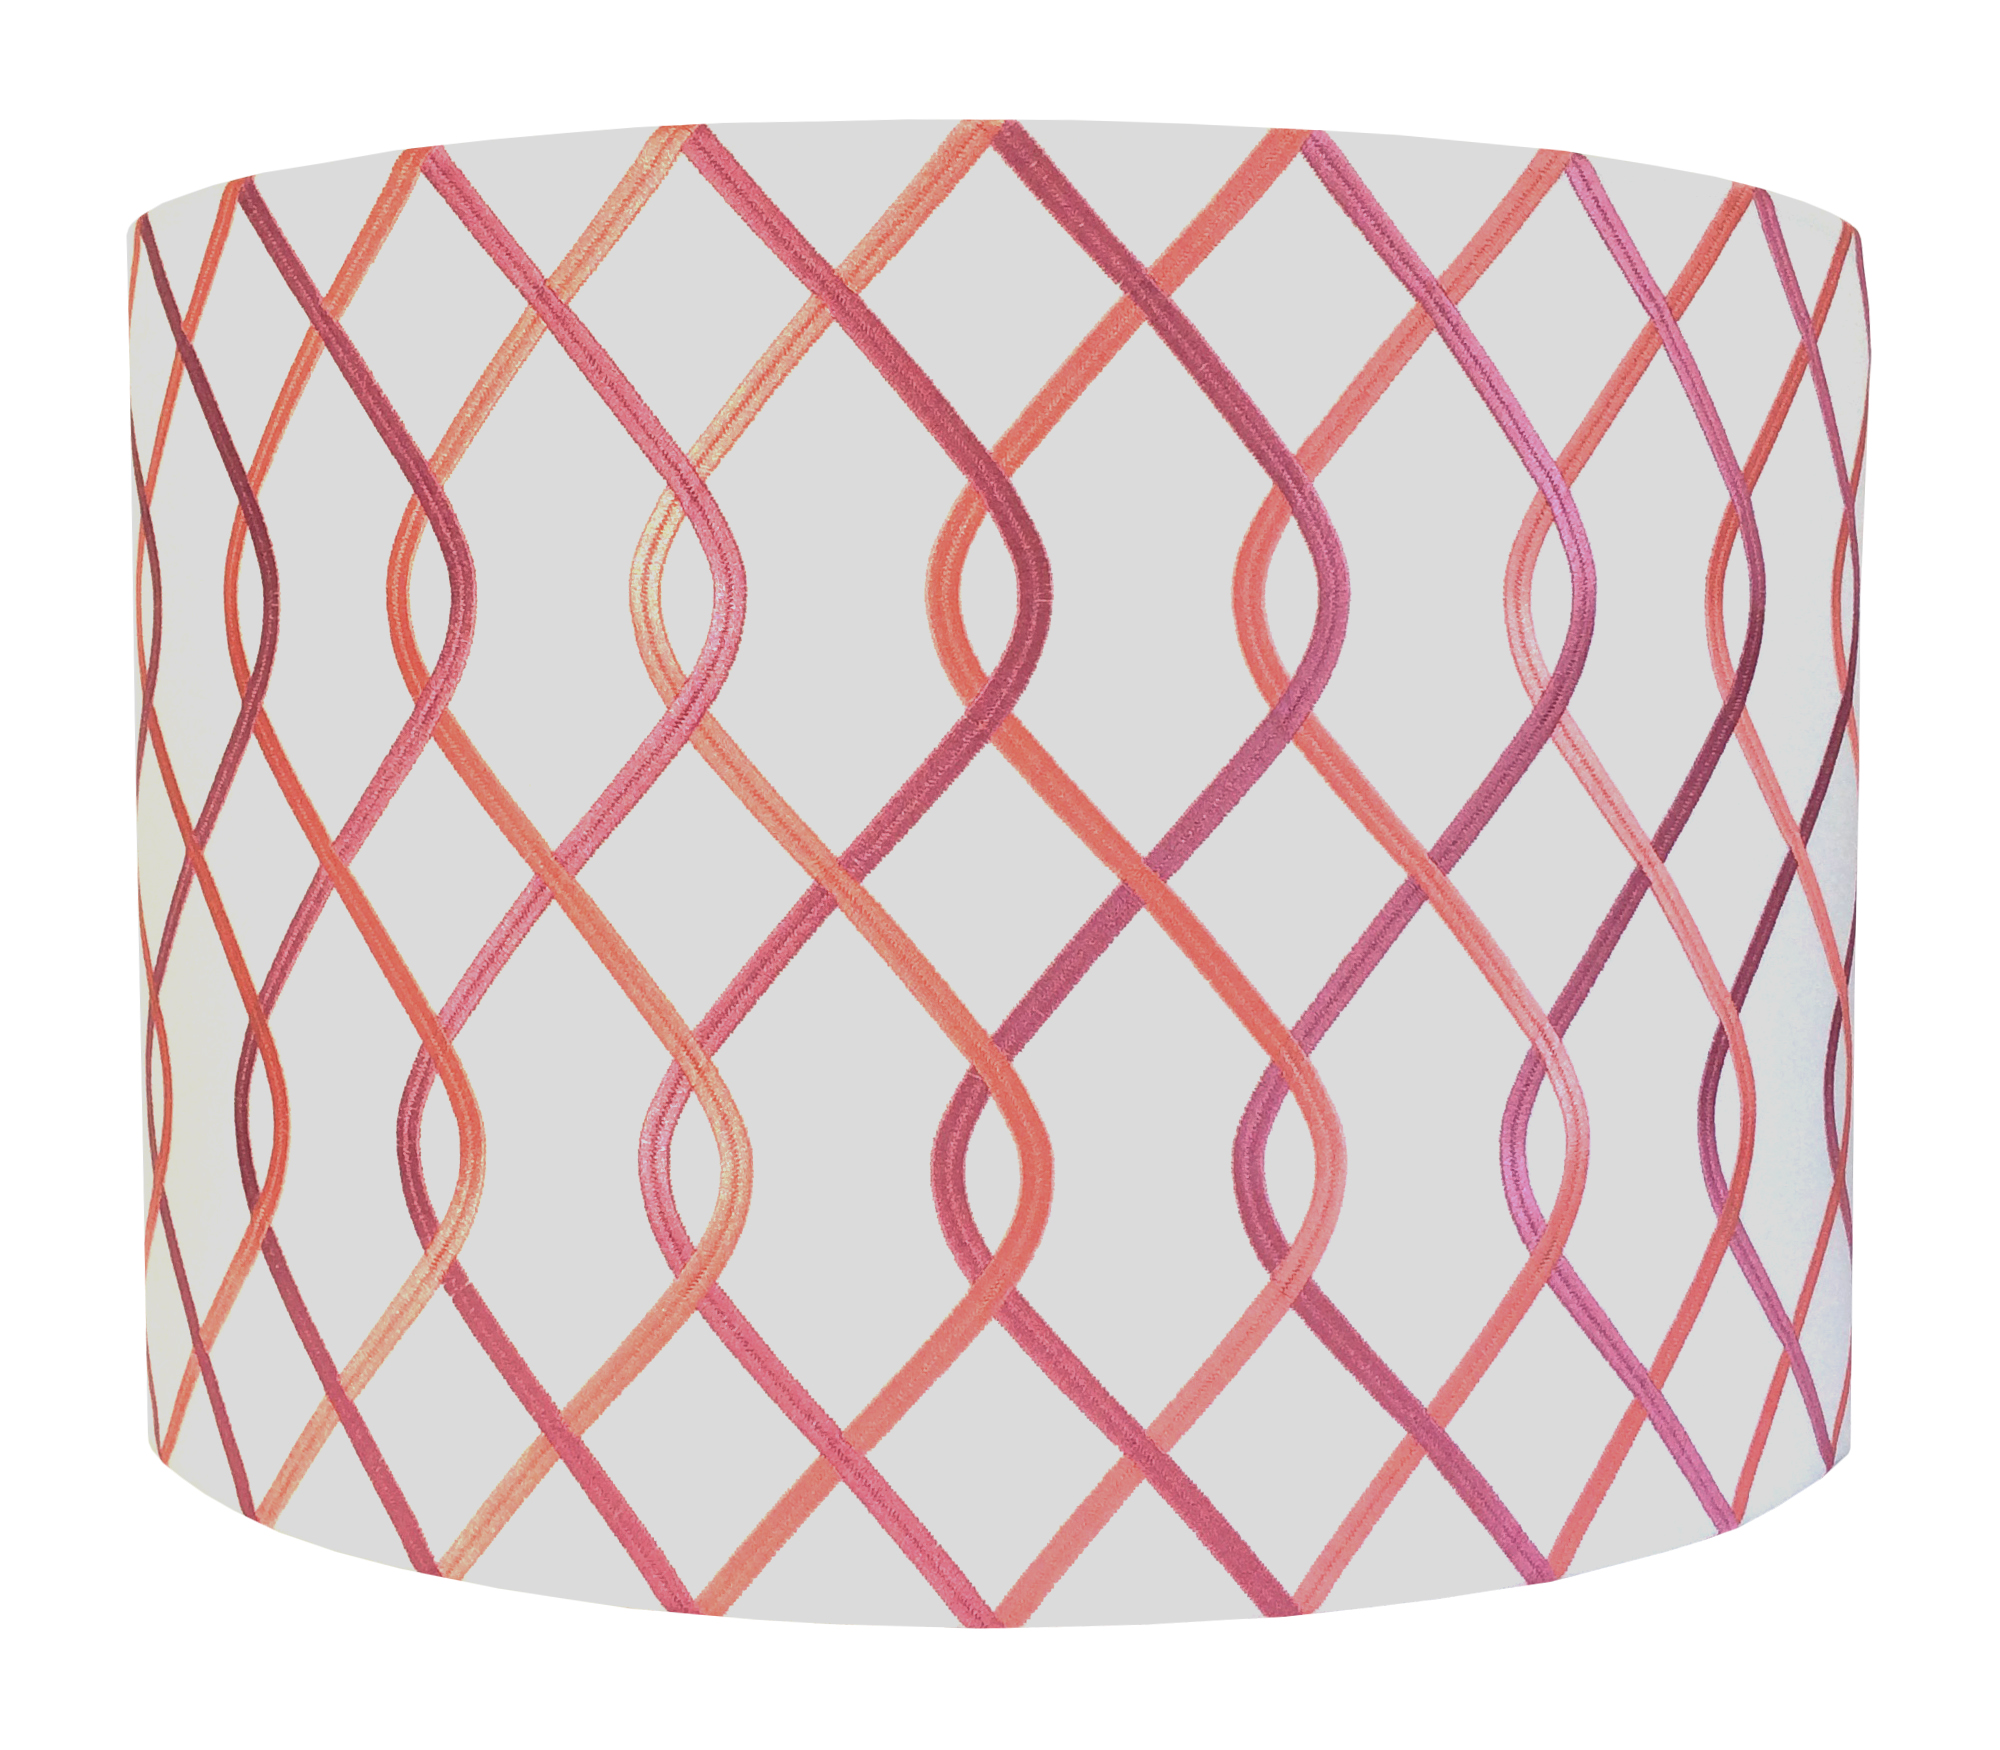 Custom sconce lampshades by Mod Pieces